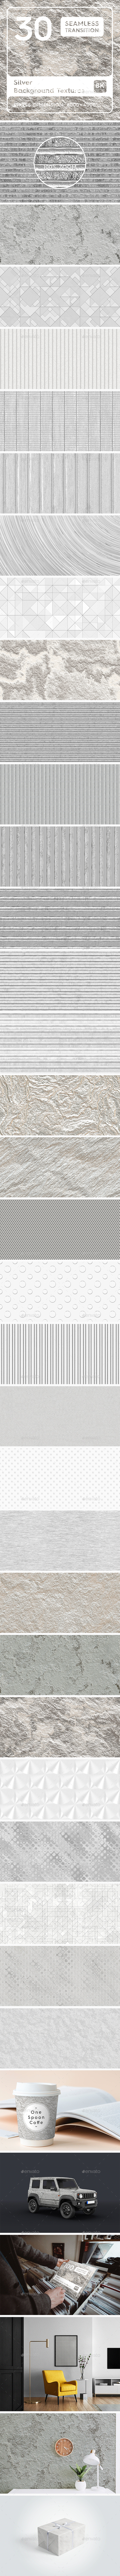 30 Silver Background Textures